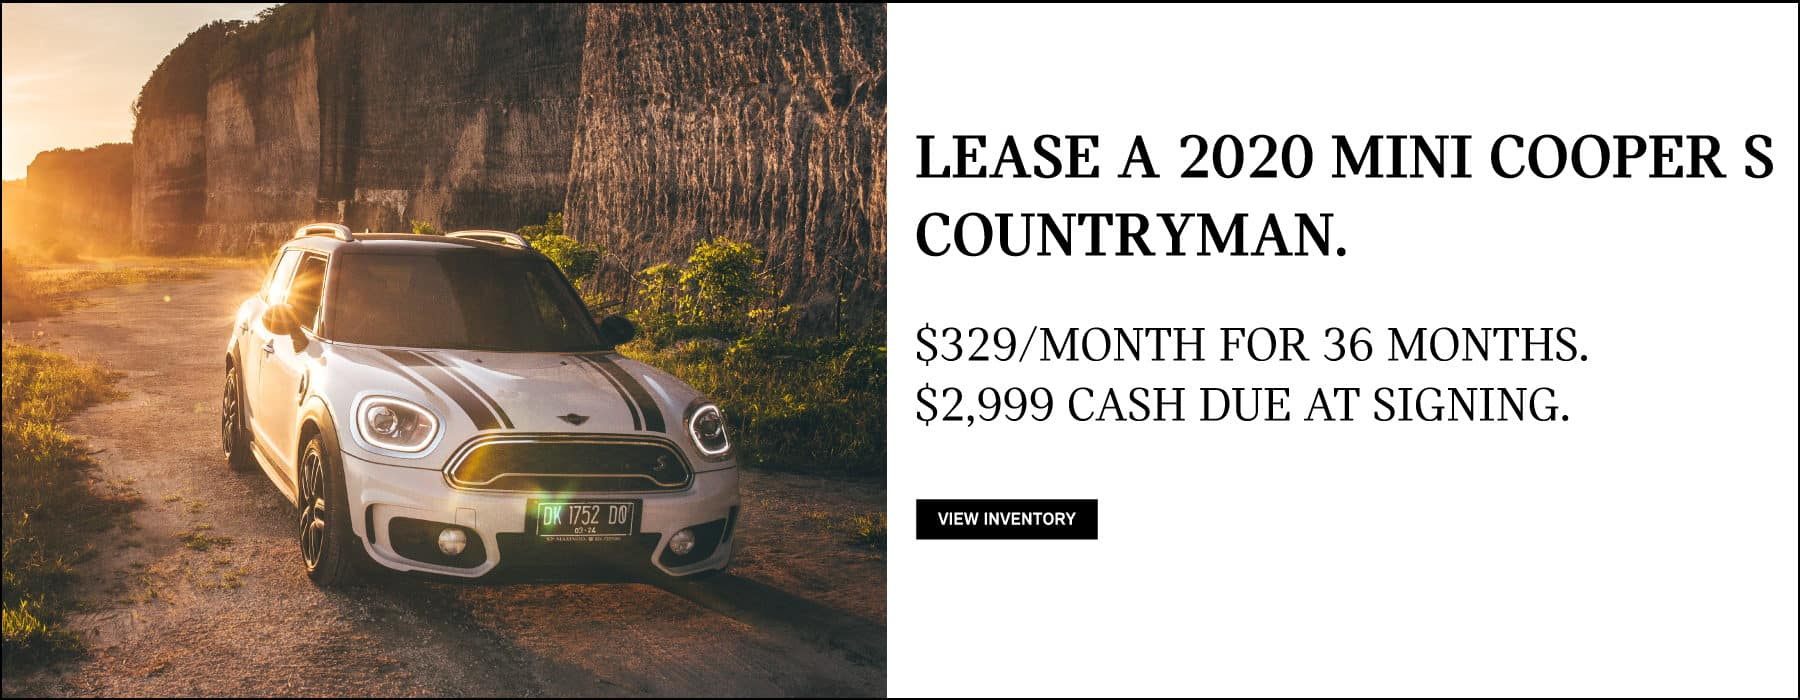 Lease a 2020 MINI Cooper S Countryman for $329/mo. View Inventory